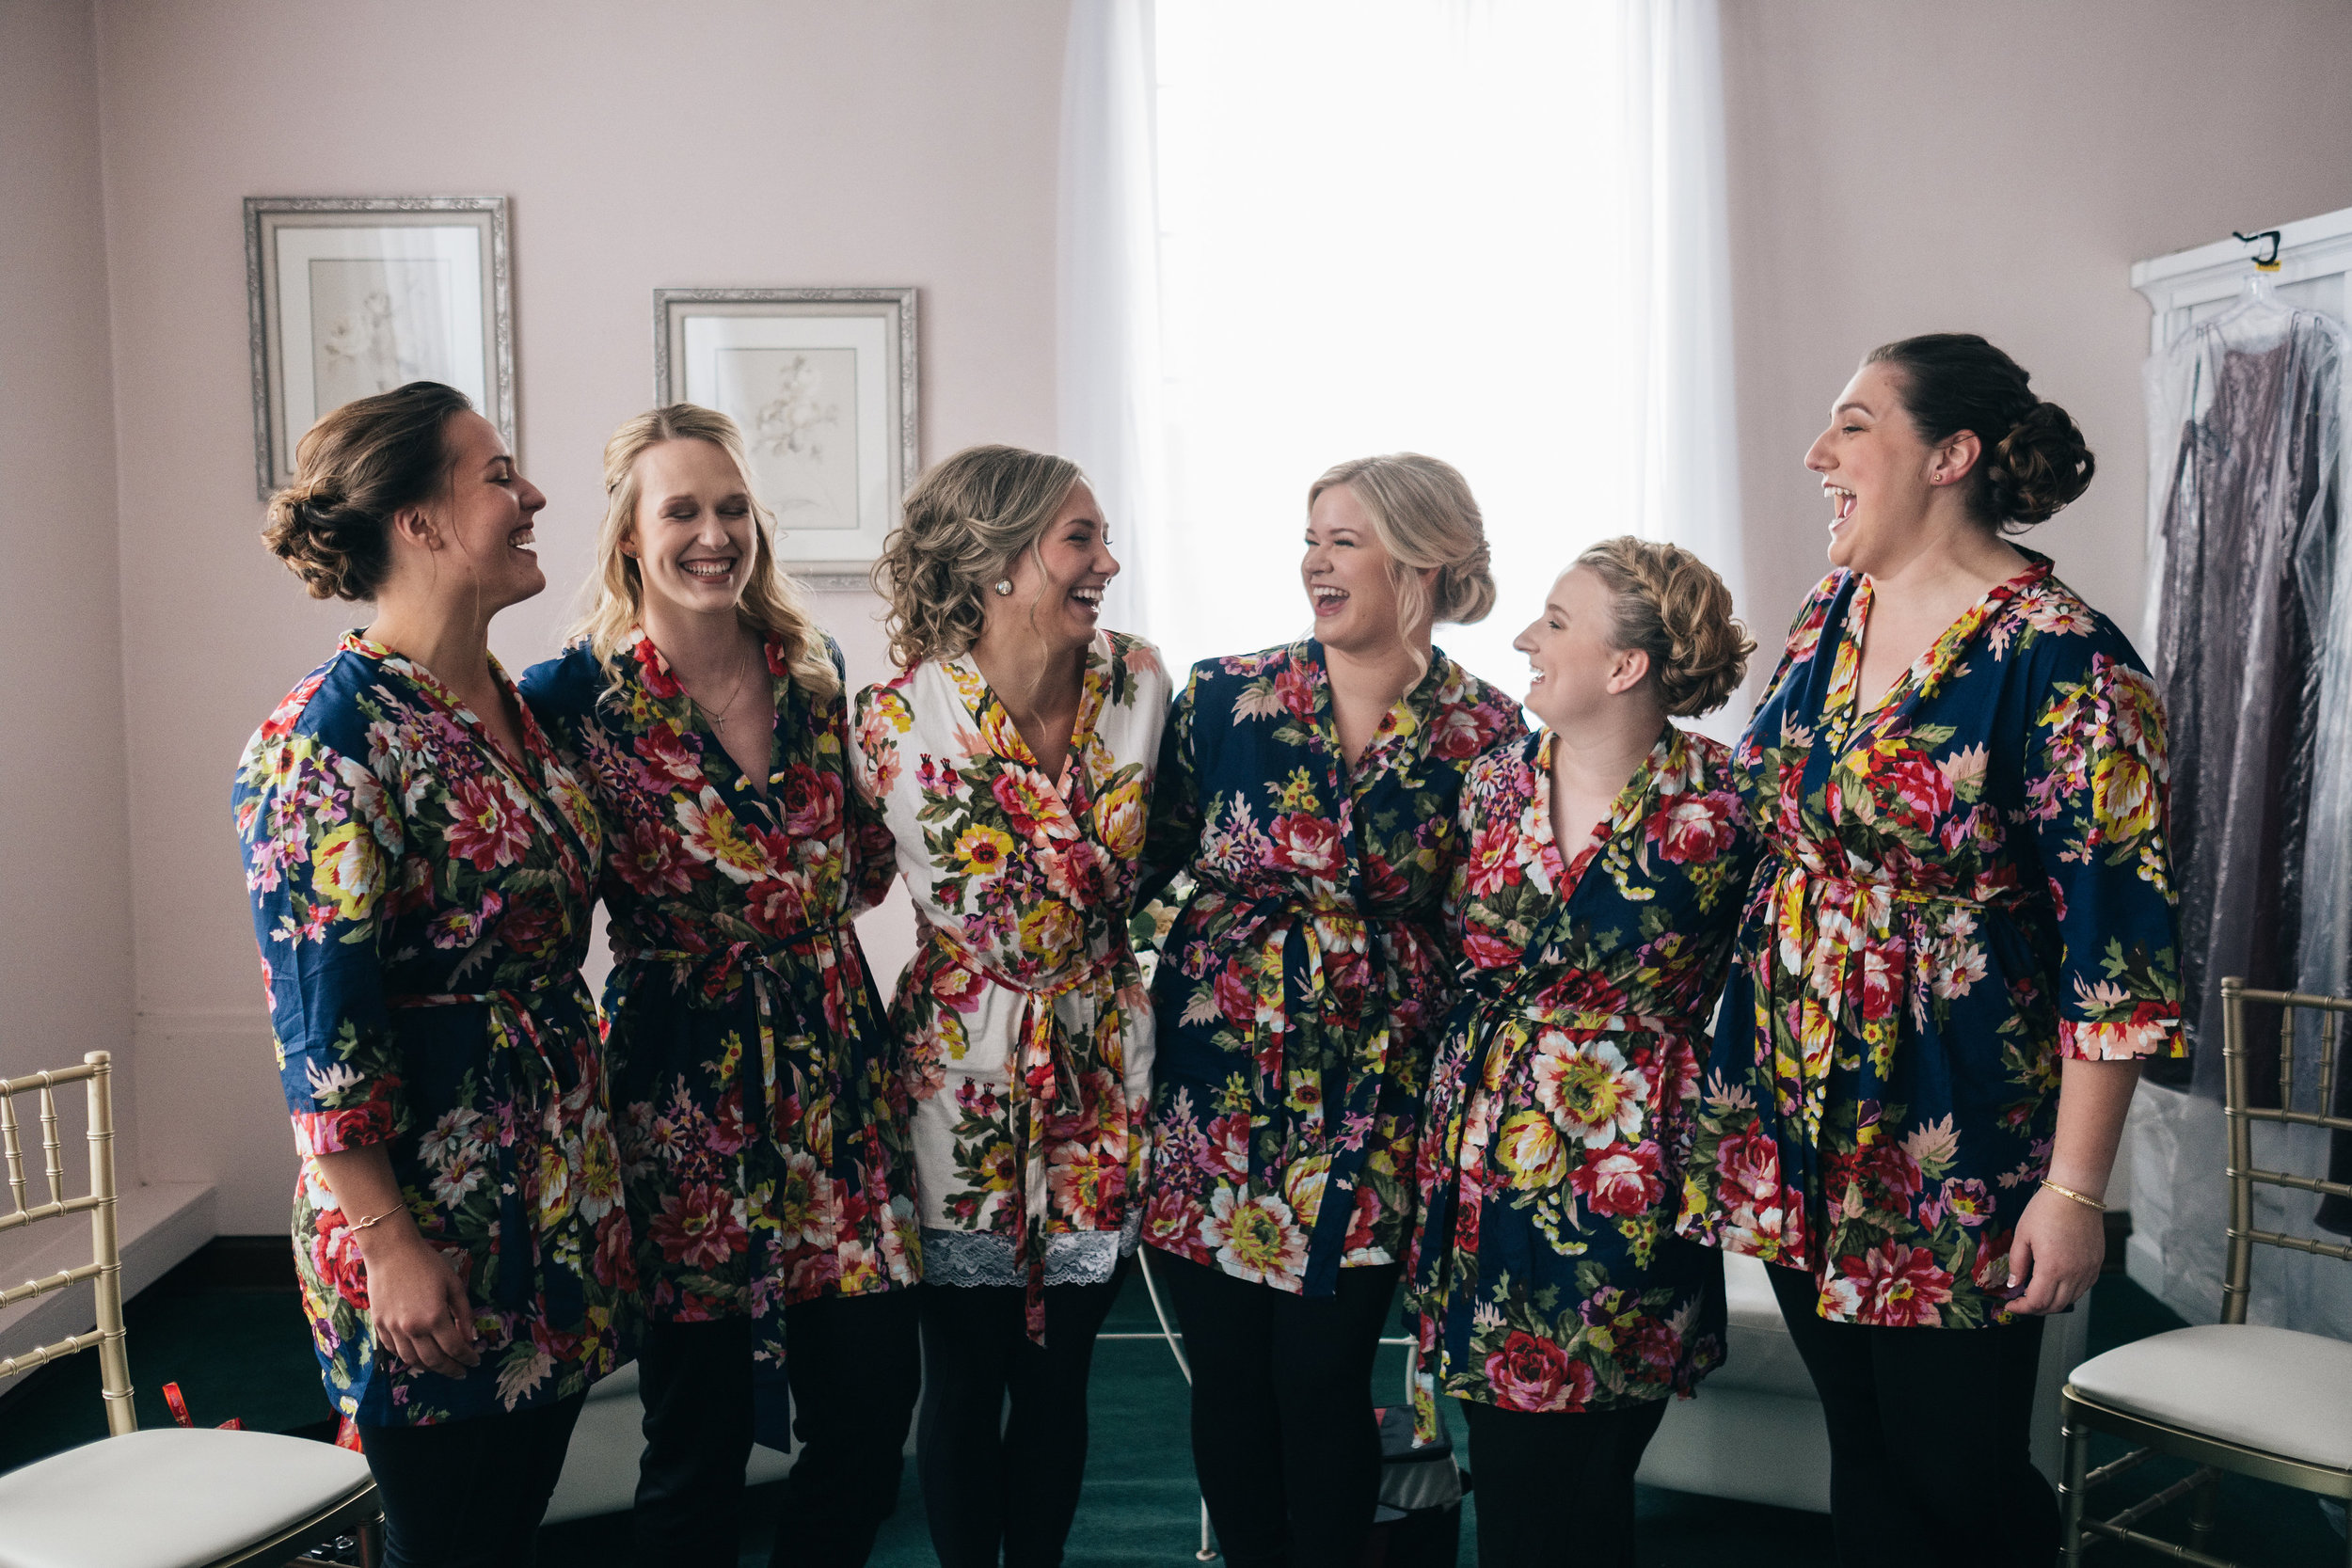 Bridesmaids Gather for Photo Before Ceremony